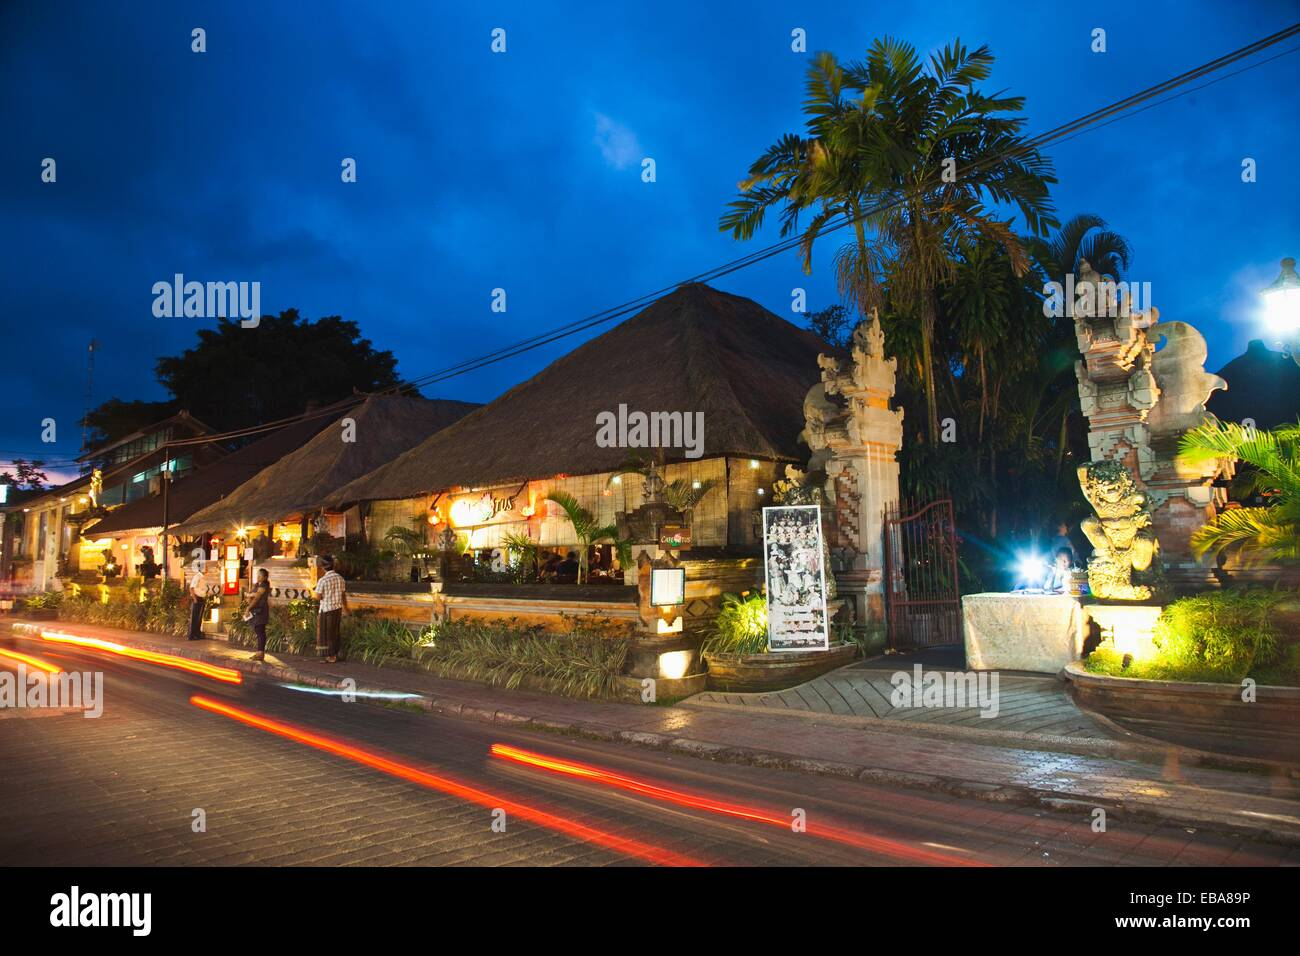 Lotus Cafe, Ubud, Bali, Indonesia Stock Photo, Royalty Free Image: 75828754